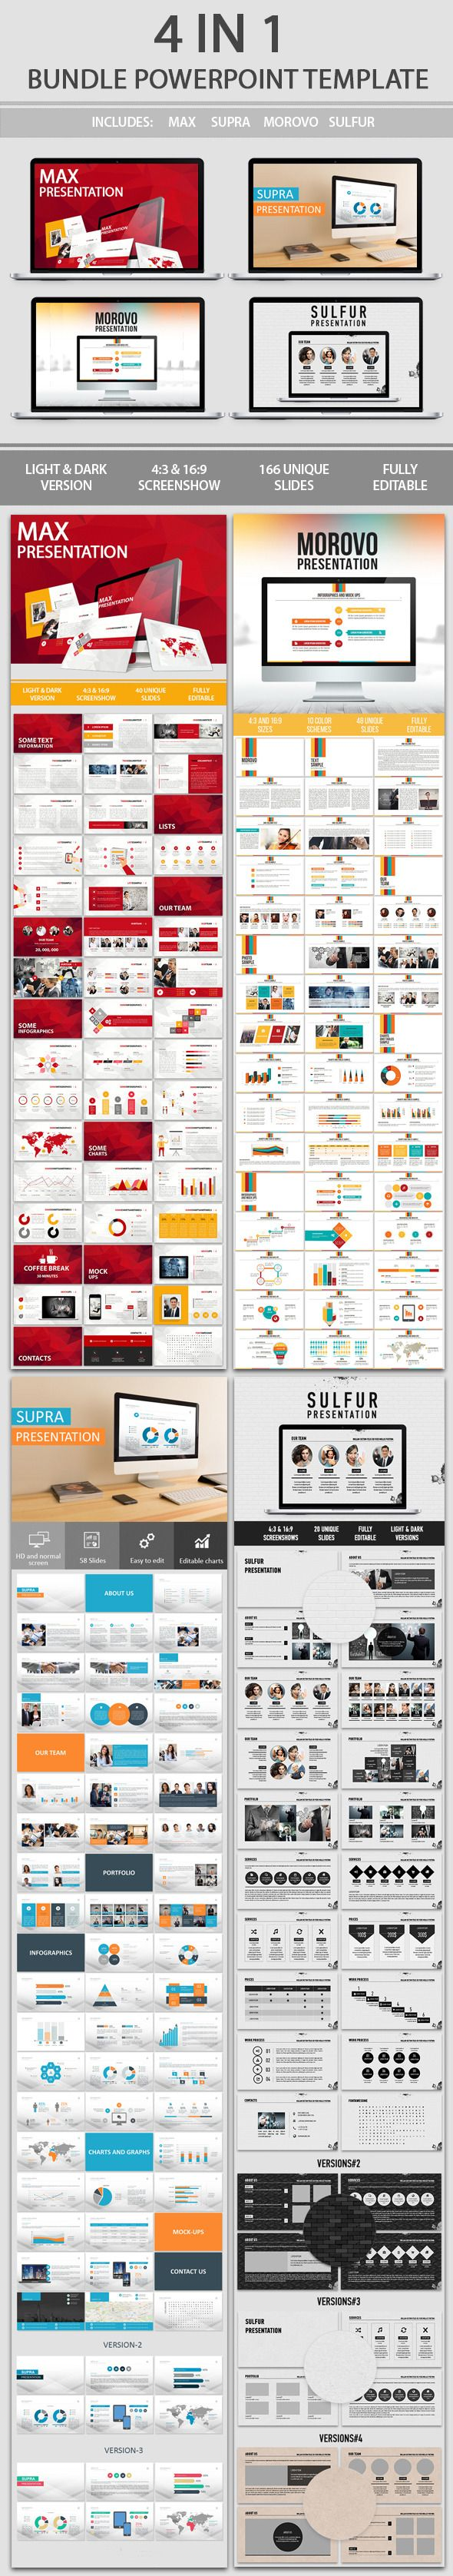 5563 best powerpoint templates images on pinterest advertising